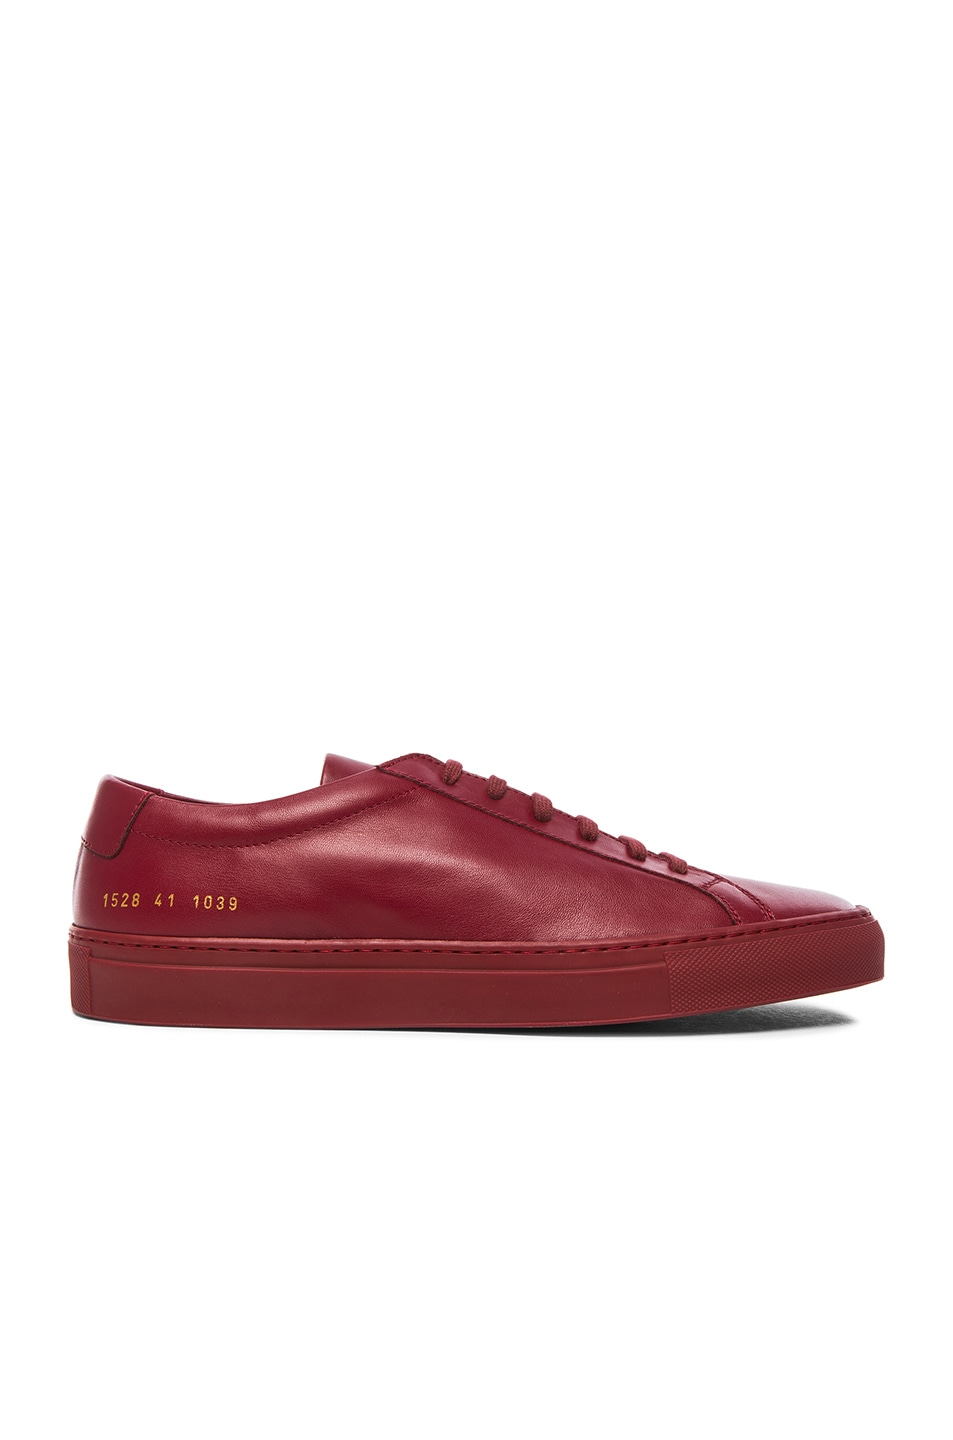 b0a8c4a140f6 Image 2 of Common Projects Original Achilles Leather Low in Red